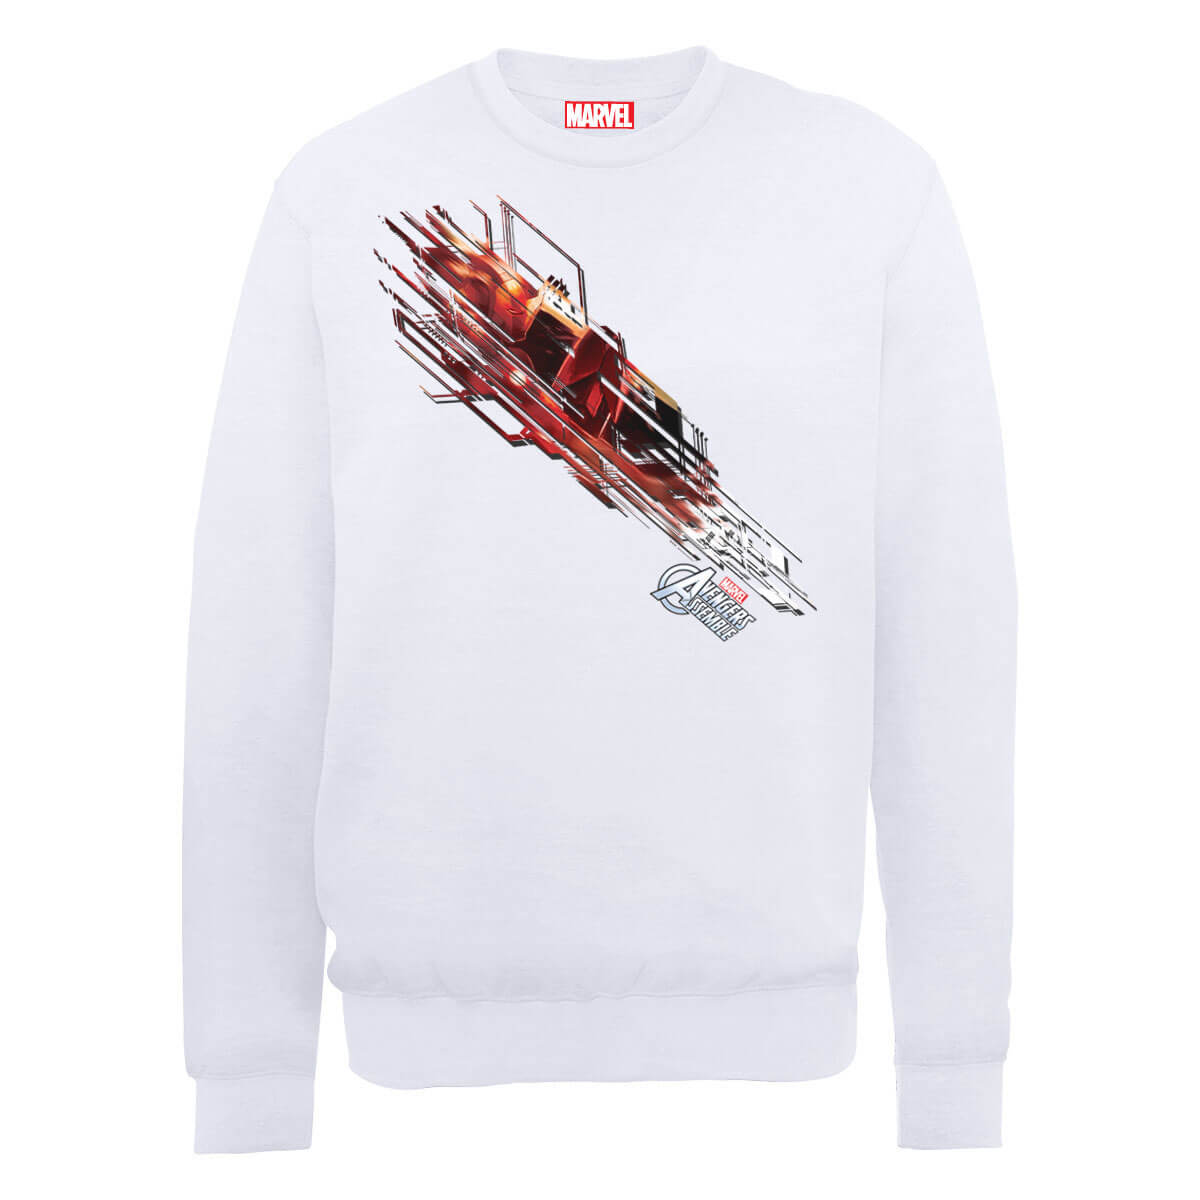 Marvel Avengers Assemble Iron Man Shooting Burst Sweatshirt - White